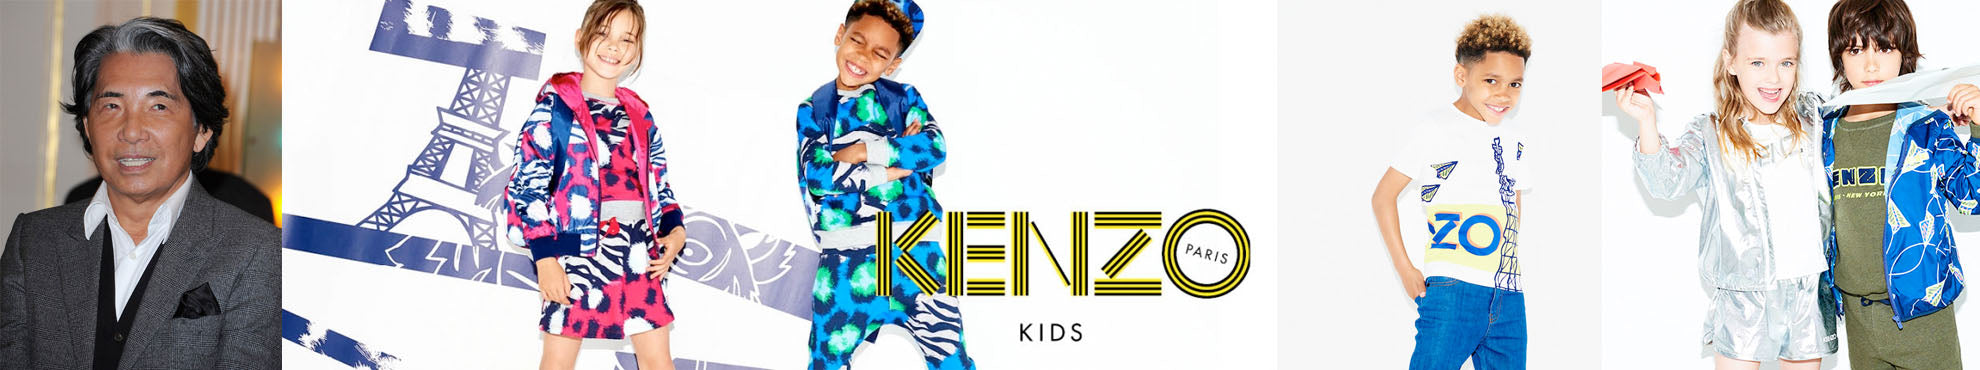 0c4dce9d4 KENZO Kids - designer children's clothing online store outlet and boutique